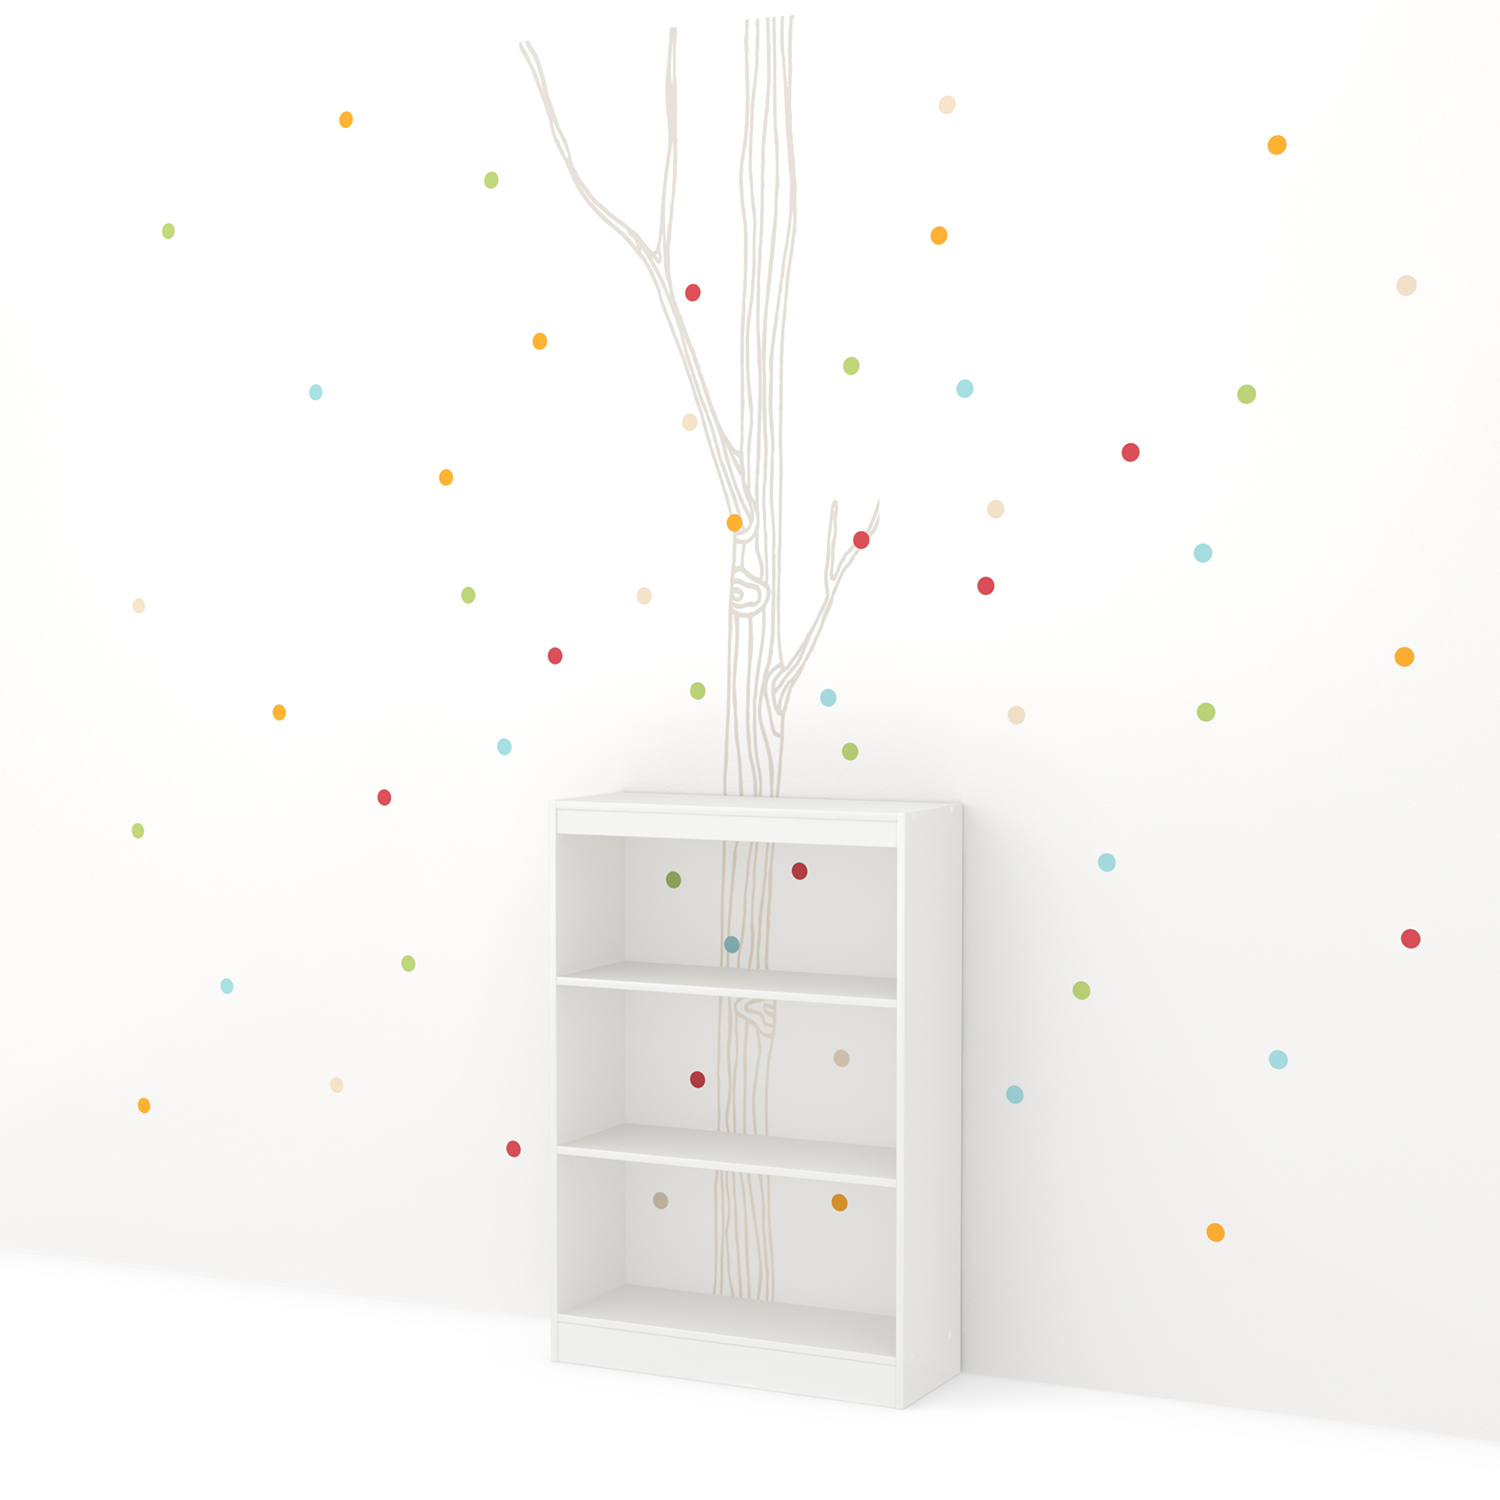 Axess 3 Shelves Bookcase - Birch Tree and Colored Dots Decals, Pure White - SS-8050126K